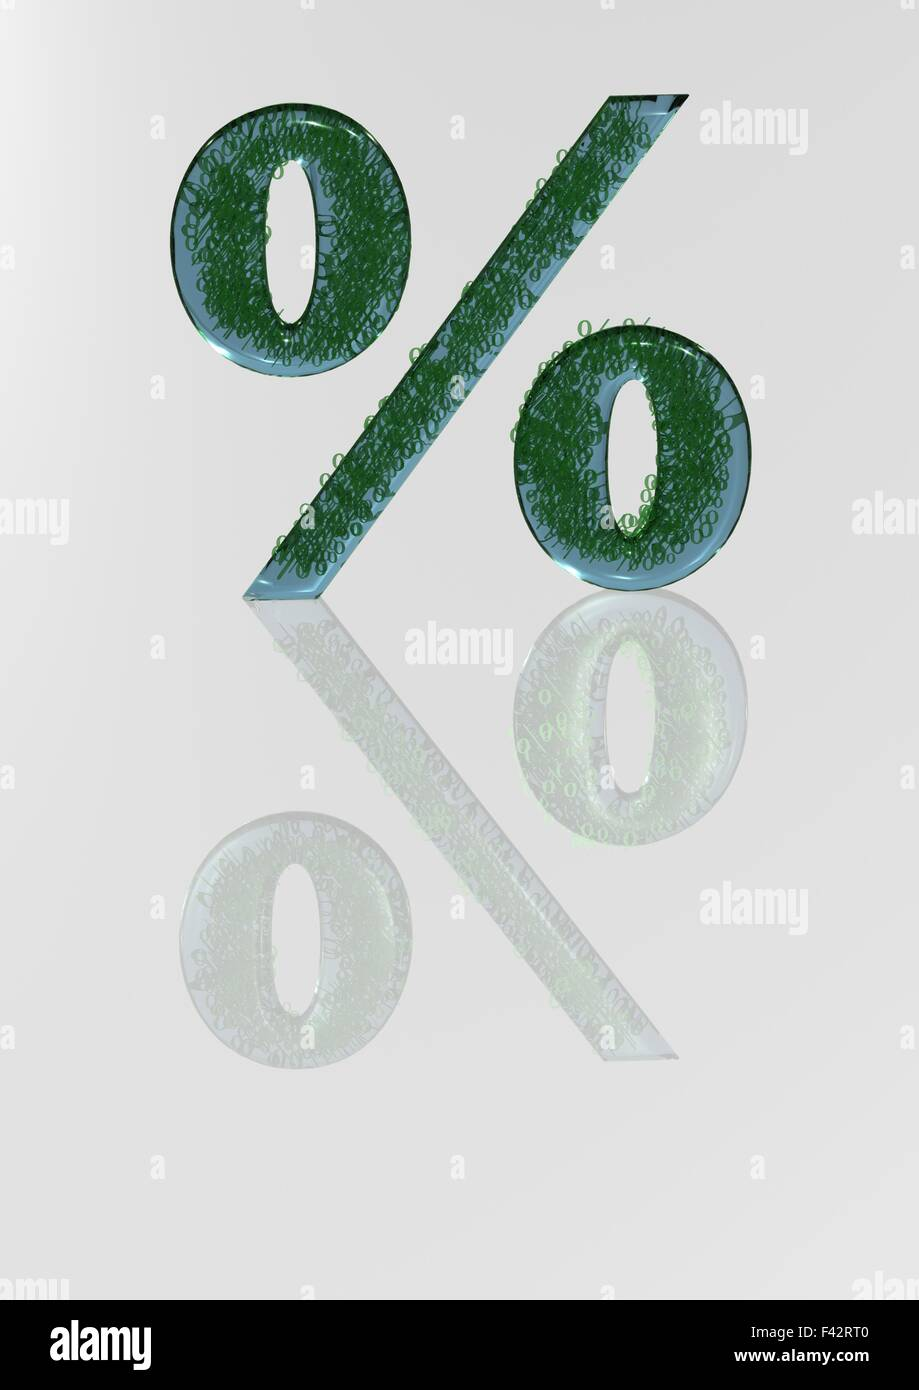 The big sign of percent. - Stock Image